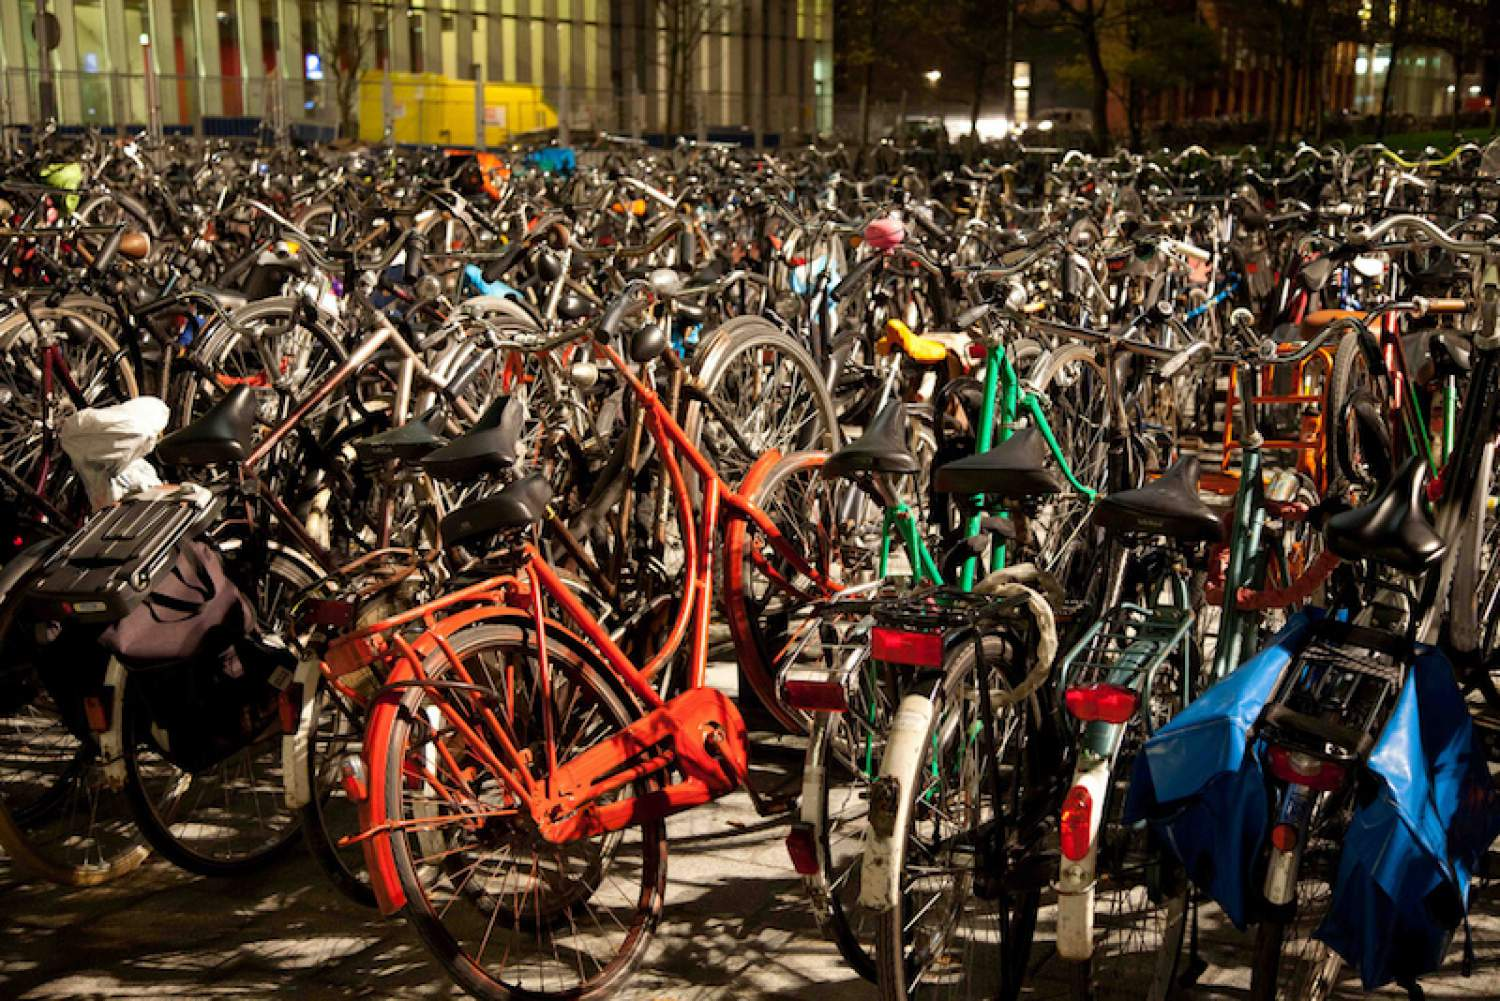 Bicycle parking lot in Amsterdam